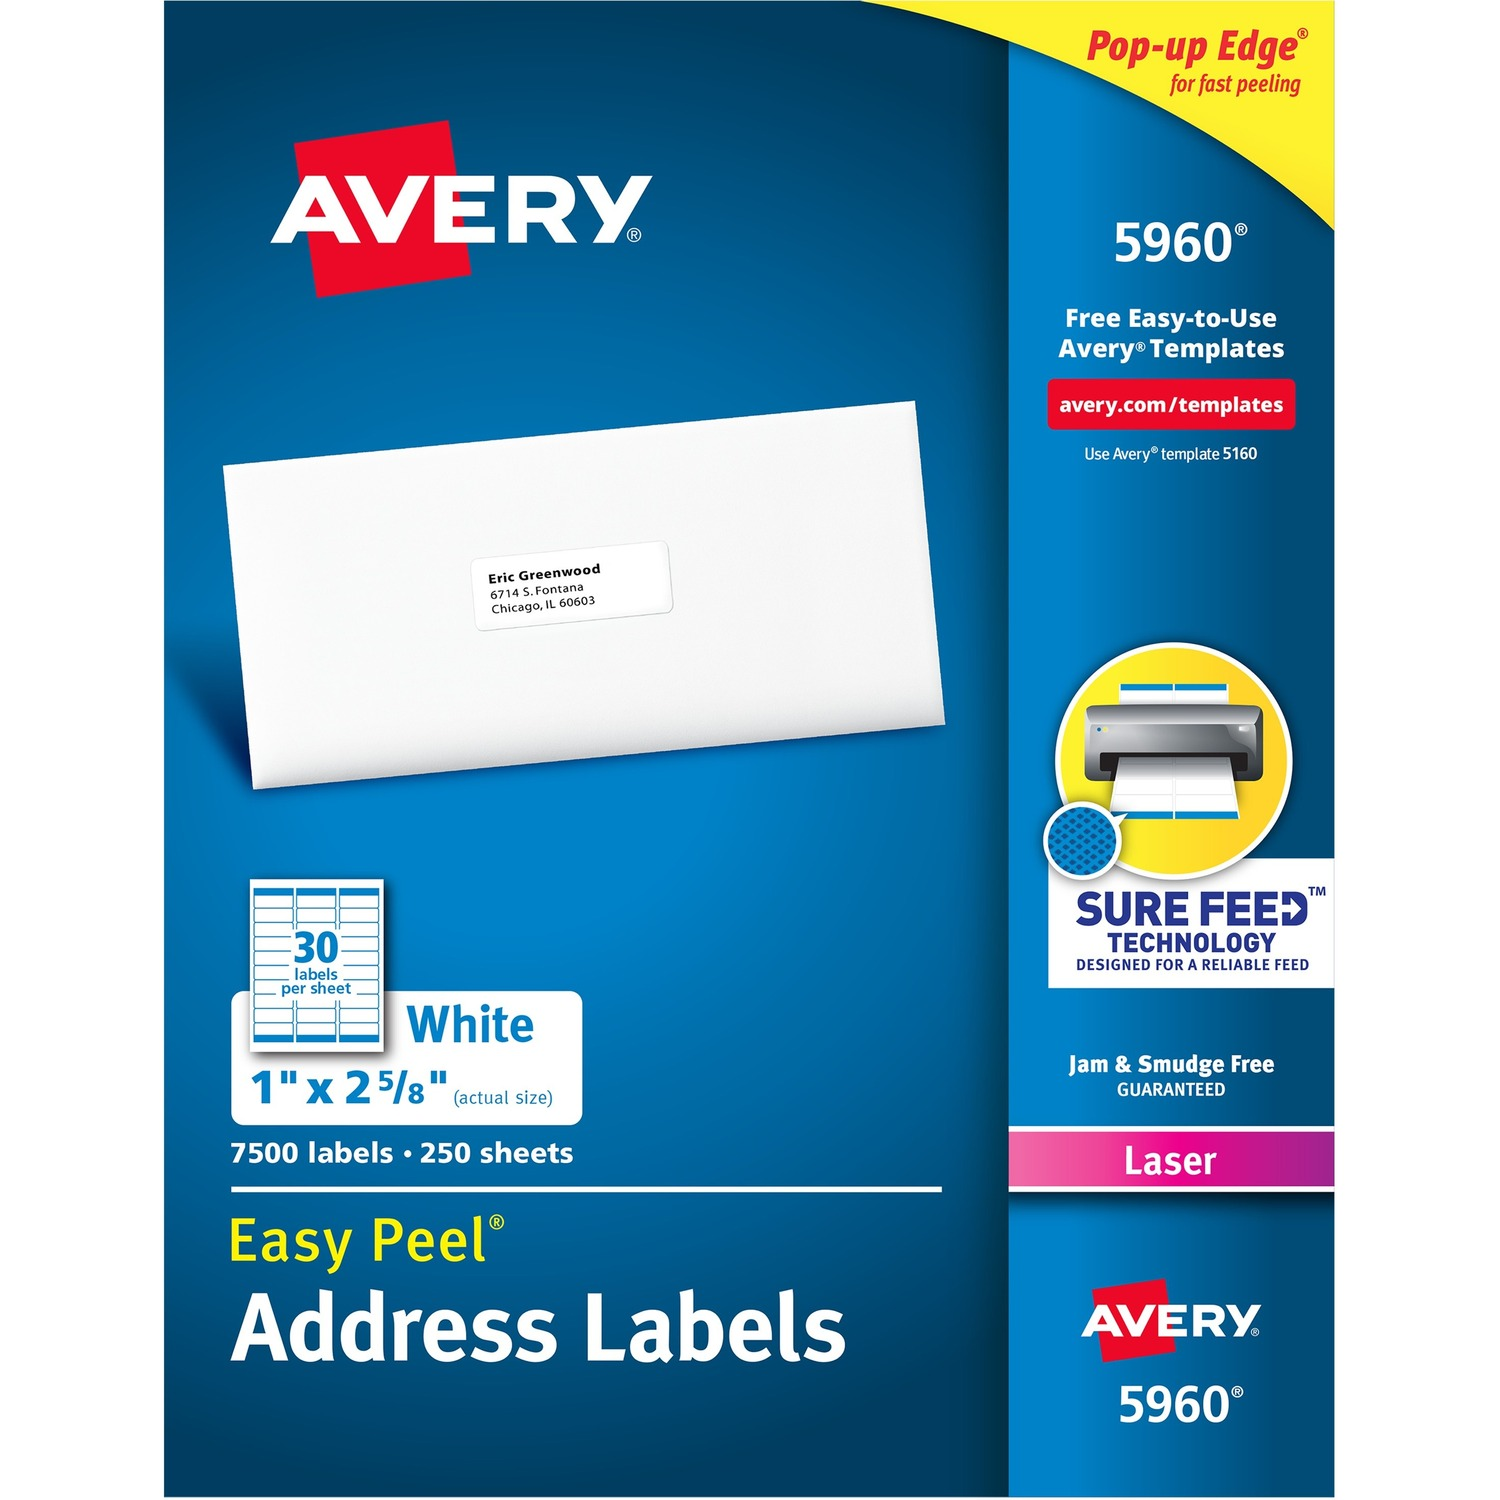 Avery Mailing Label Template Ukranochi